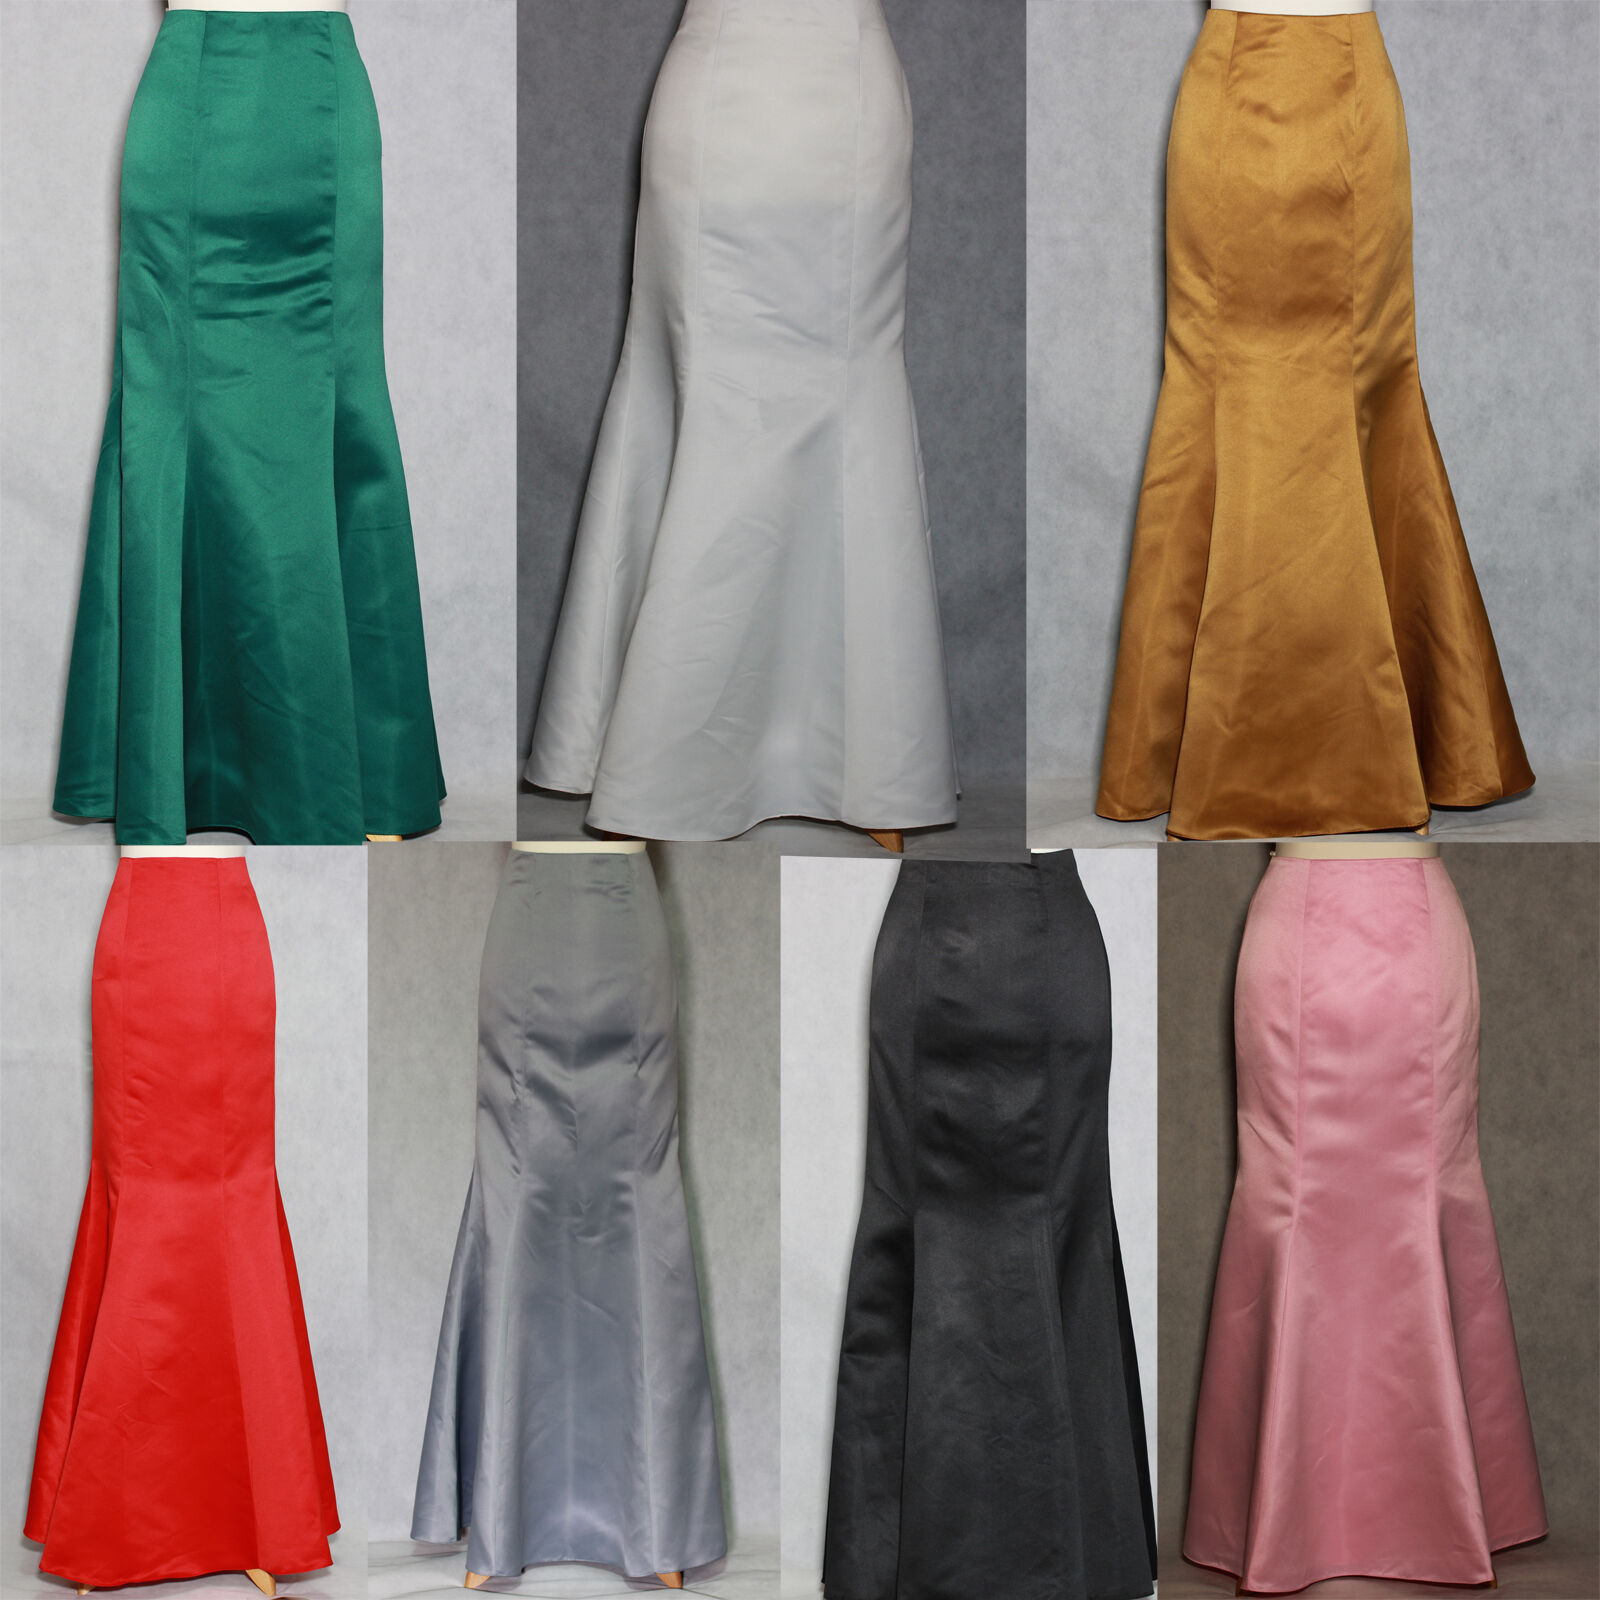 New Satin Fishtail Skirt Ball, Prom, Wedding, Evening. Size 4 to 30 #2(7 col)